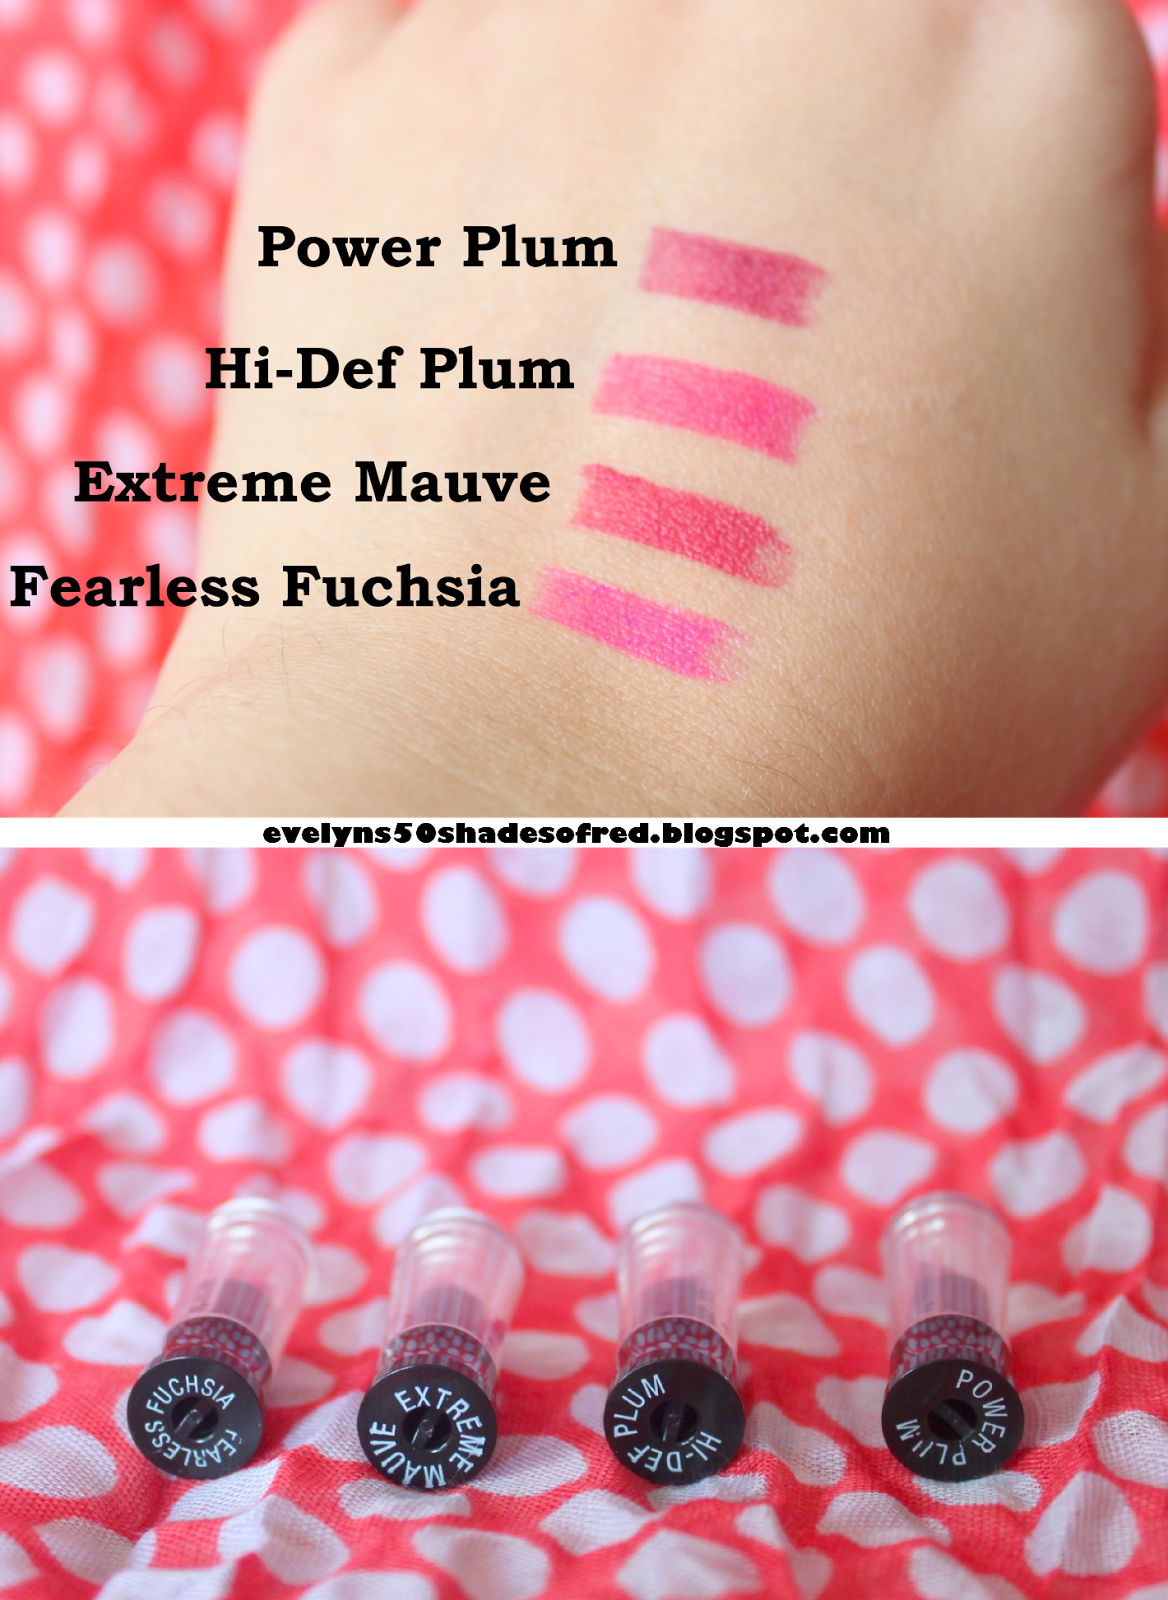 AVON ULTRA COLOUR BOLD Fearless Fuchsia Extreme Mauve, Hi-Def Plum Power Plum